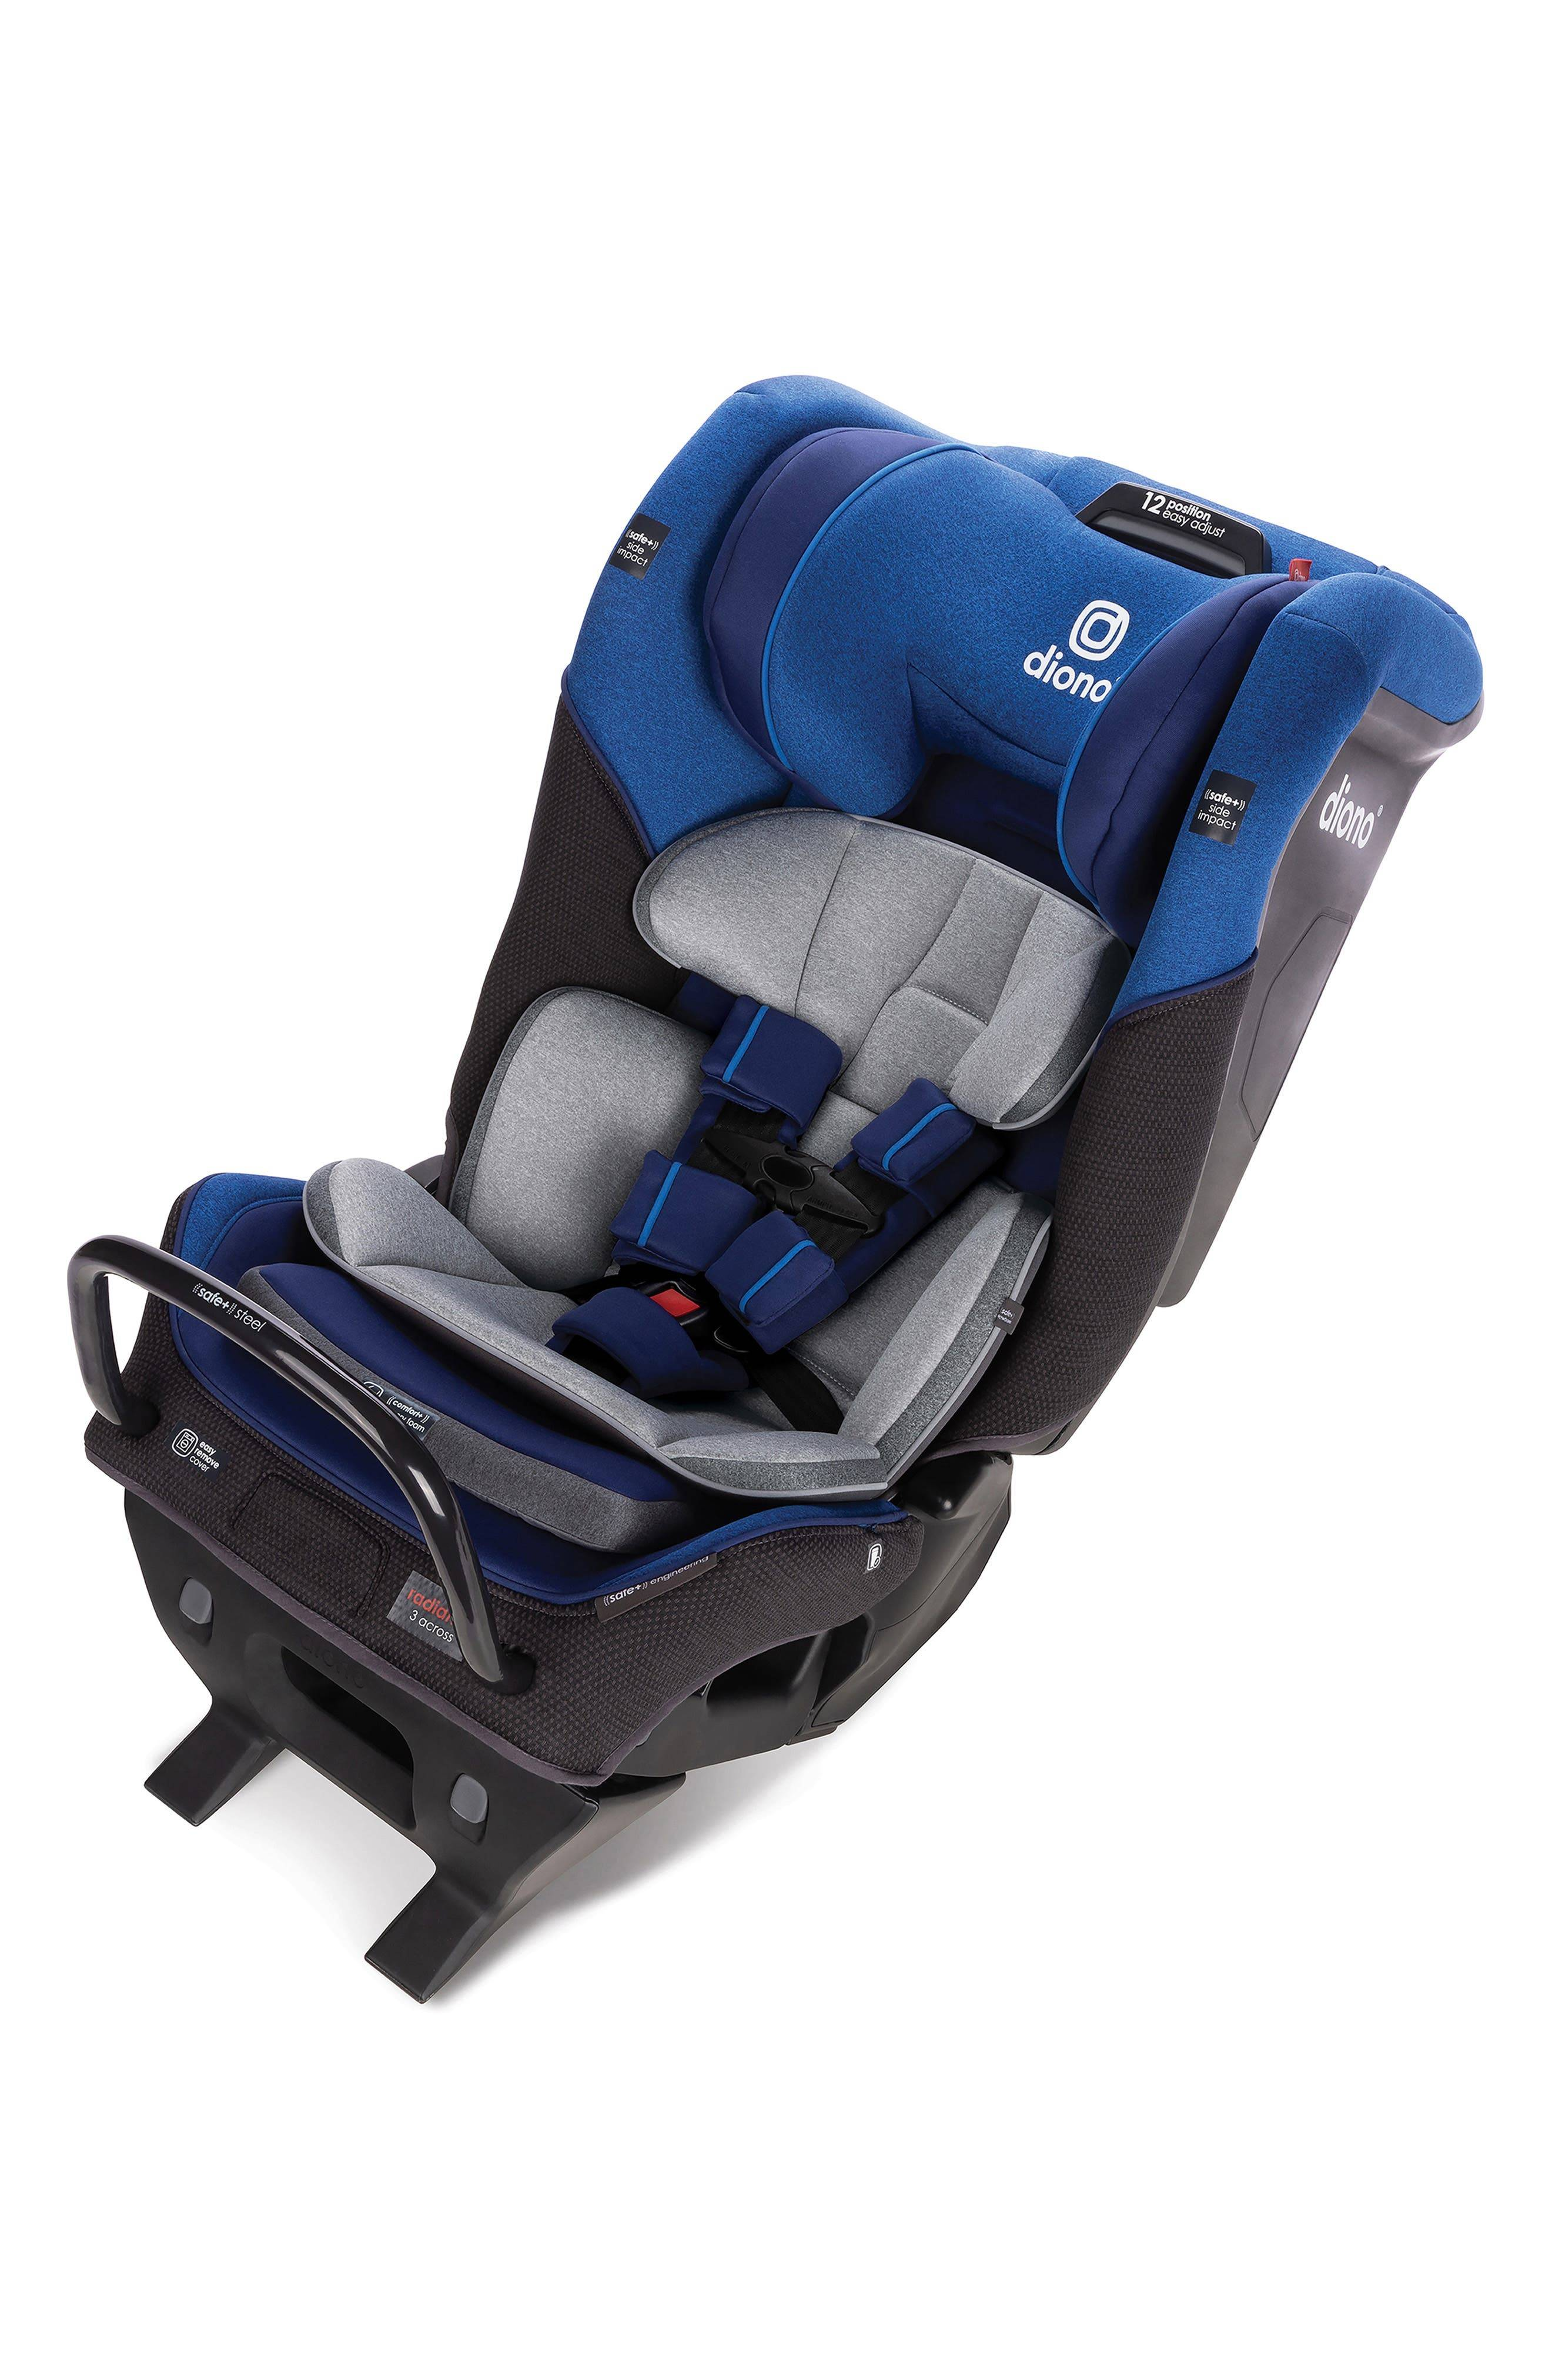 Diono Infant Diono Radian 3Qx All-In-One Convertible Car Seat, Size One Size - Blue